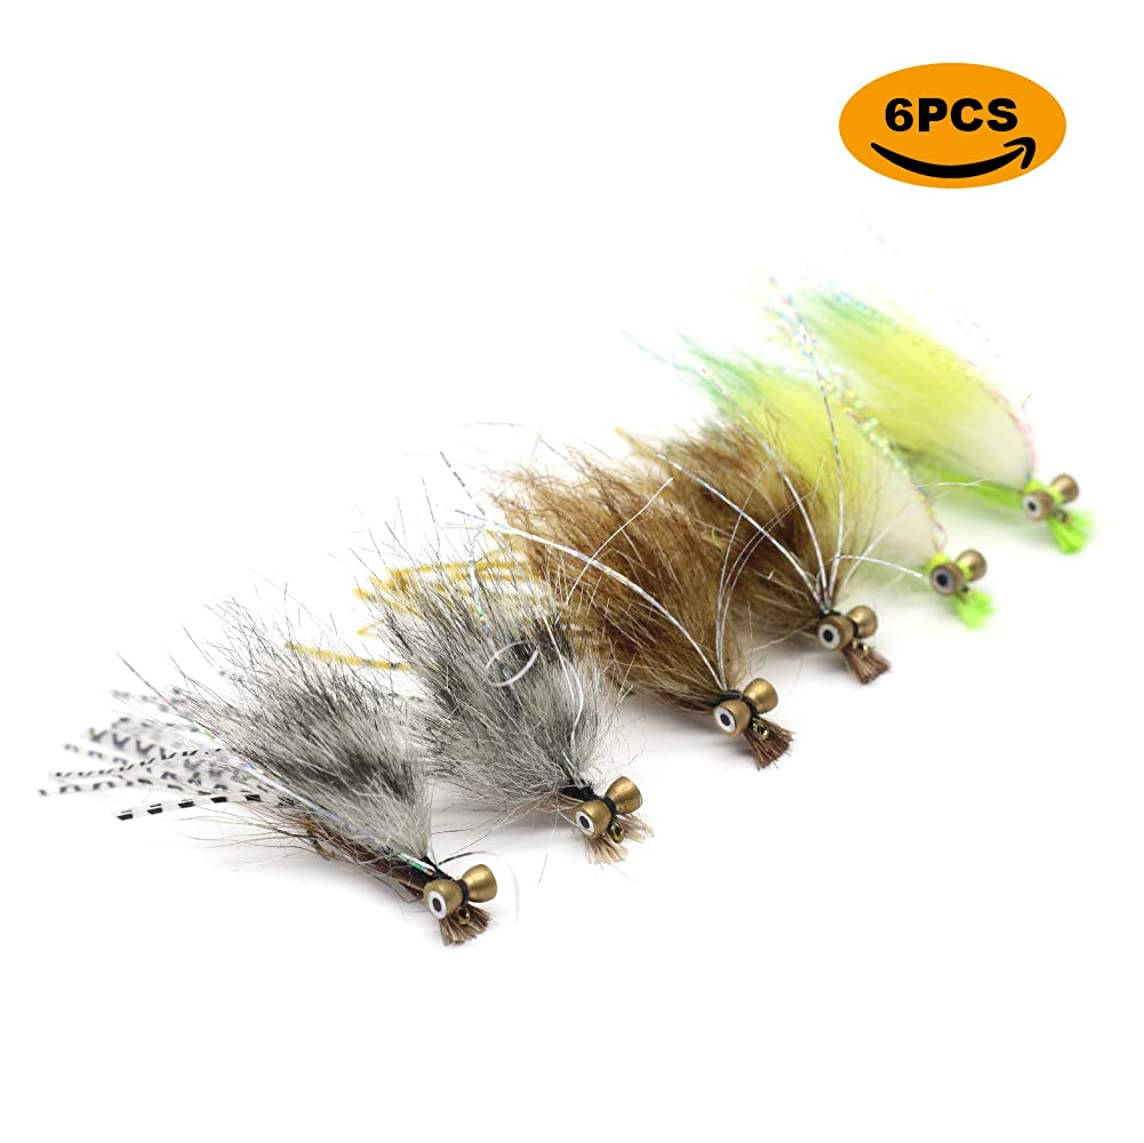 YZD Fly Fishing Big Trout Flies Kit Top 5 Steelhead Flies Flyfishing Gear Premium Wet Dry Flies Trout Lures Streamer Nymph Emerger Fishing Assorted Trout Flies Bass Salmon